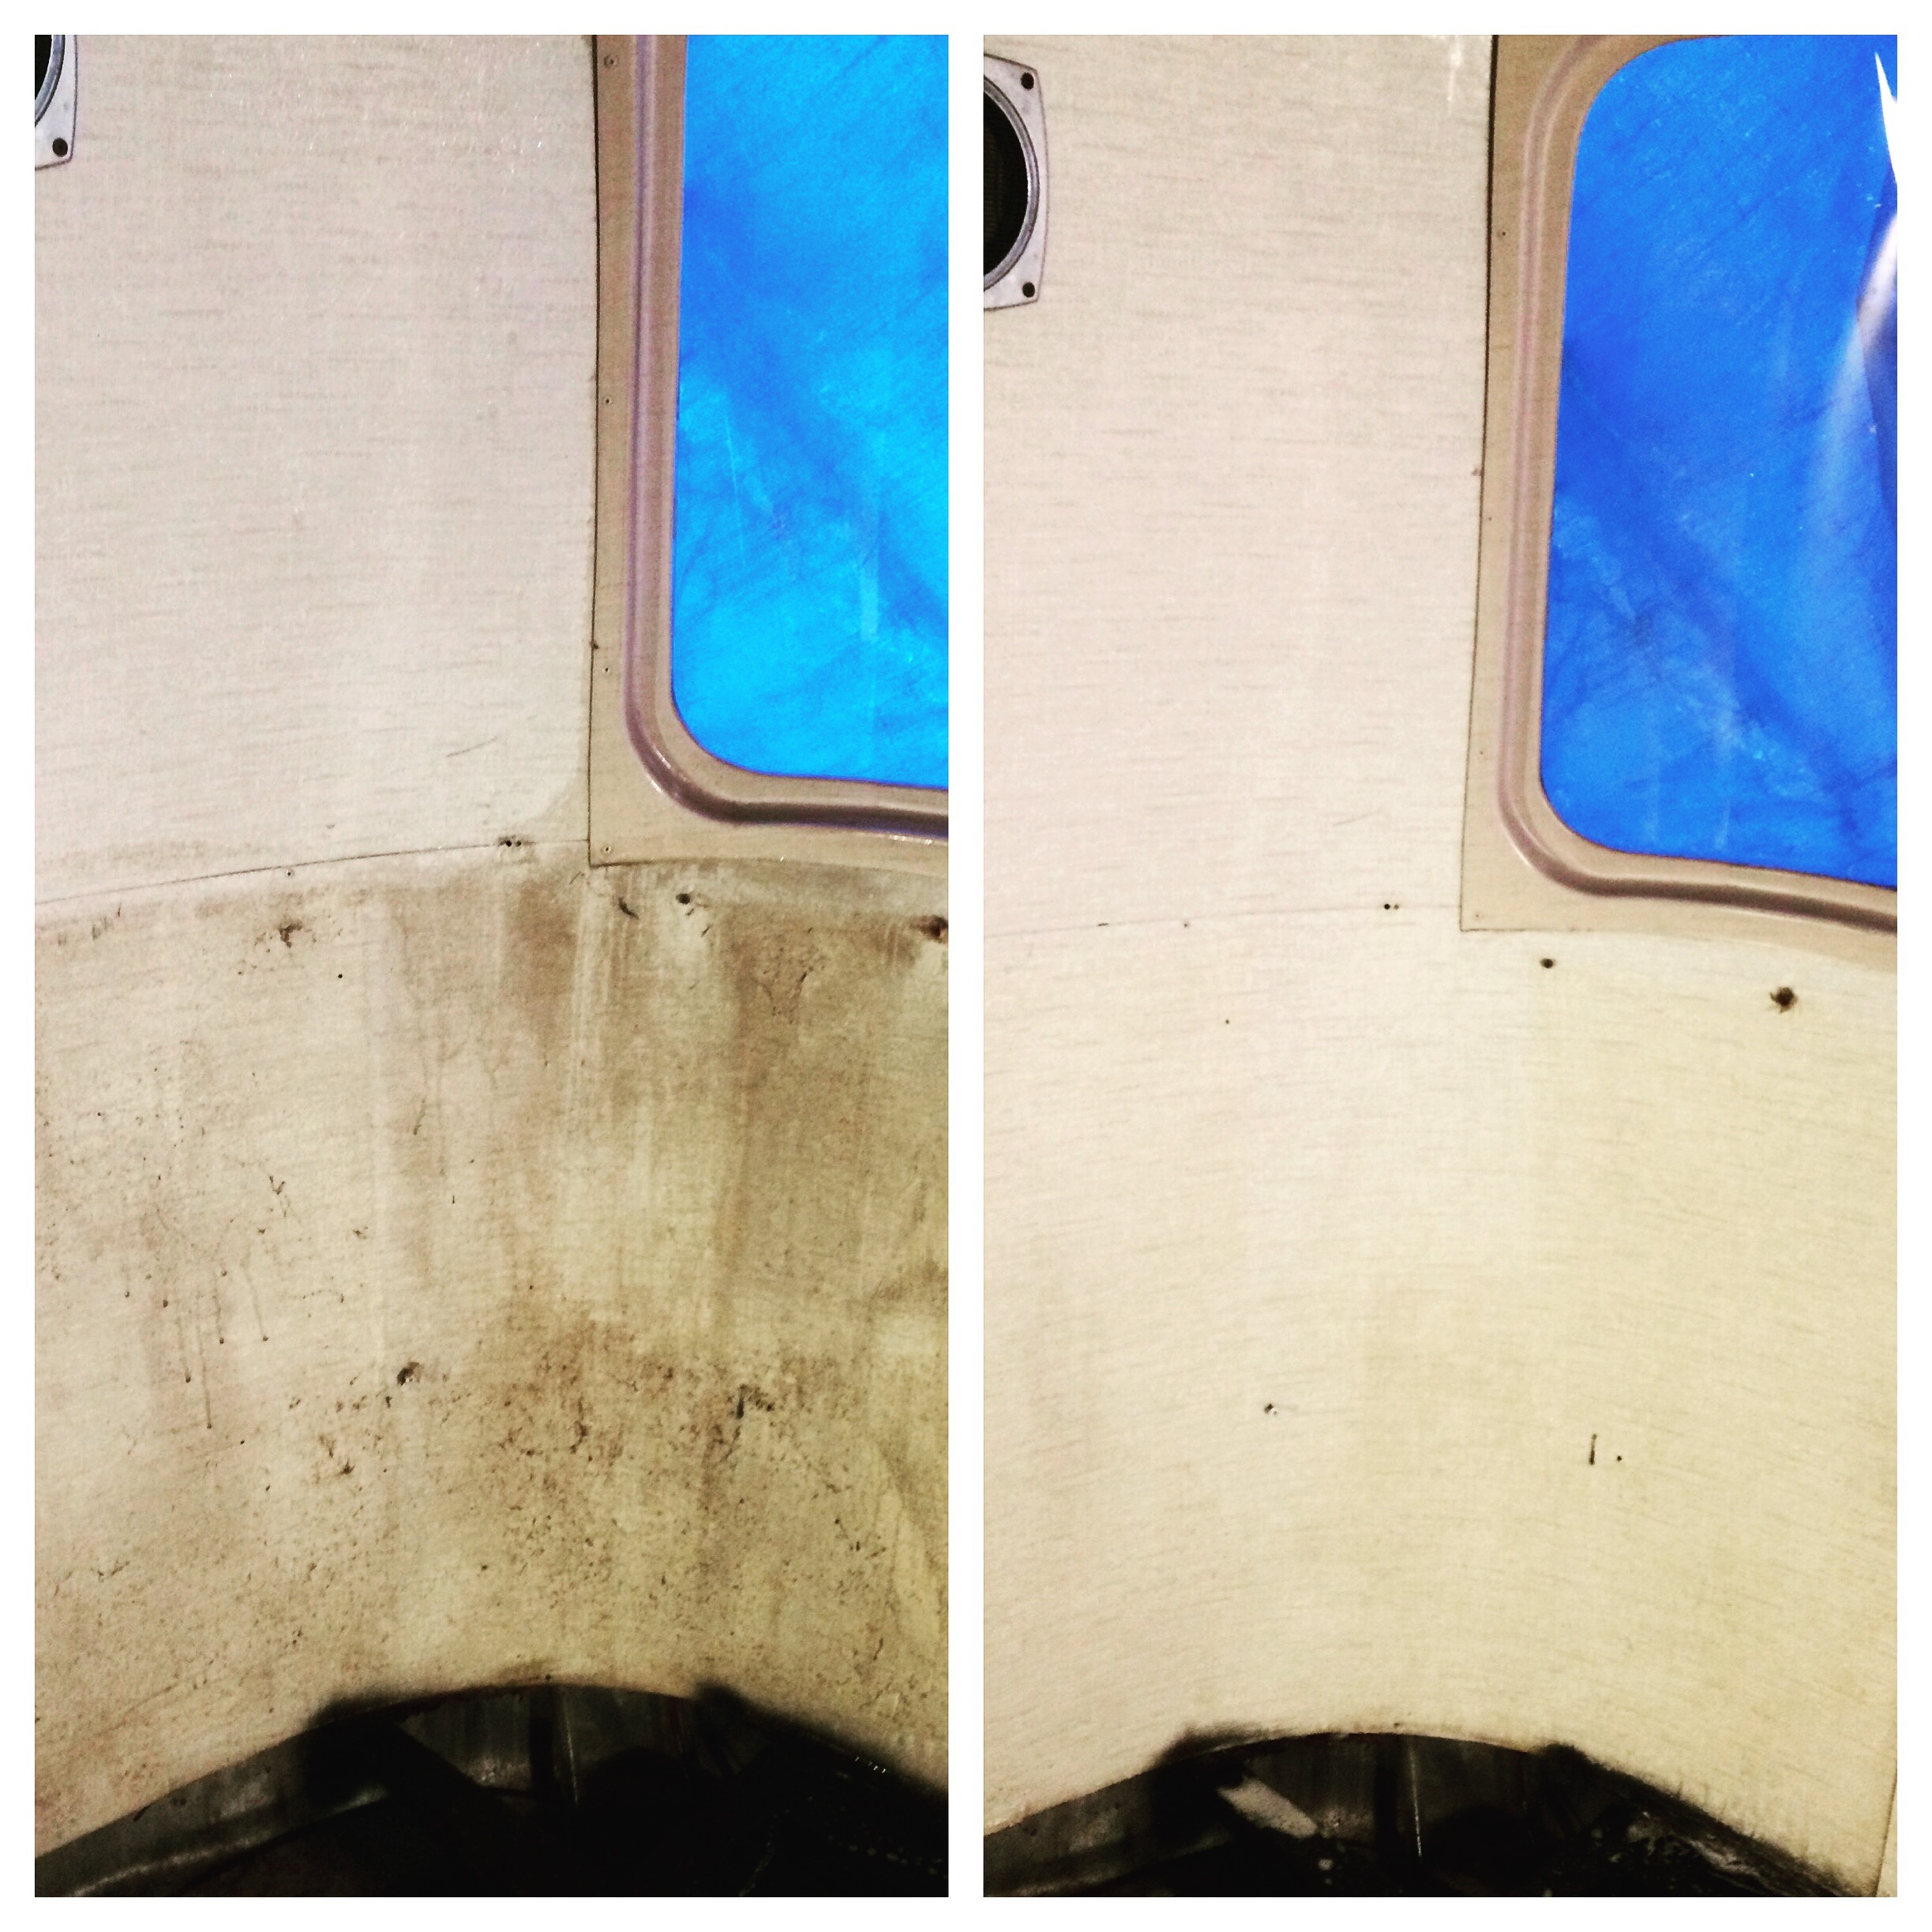 Mold be-gone! Citrus solvent does the trick (and lots of water and scrubbing!)